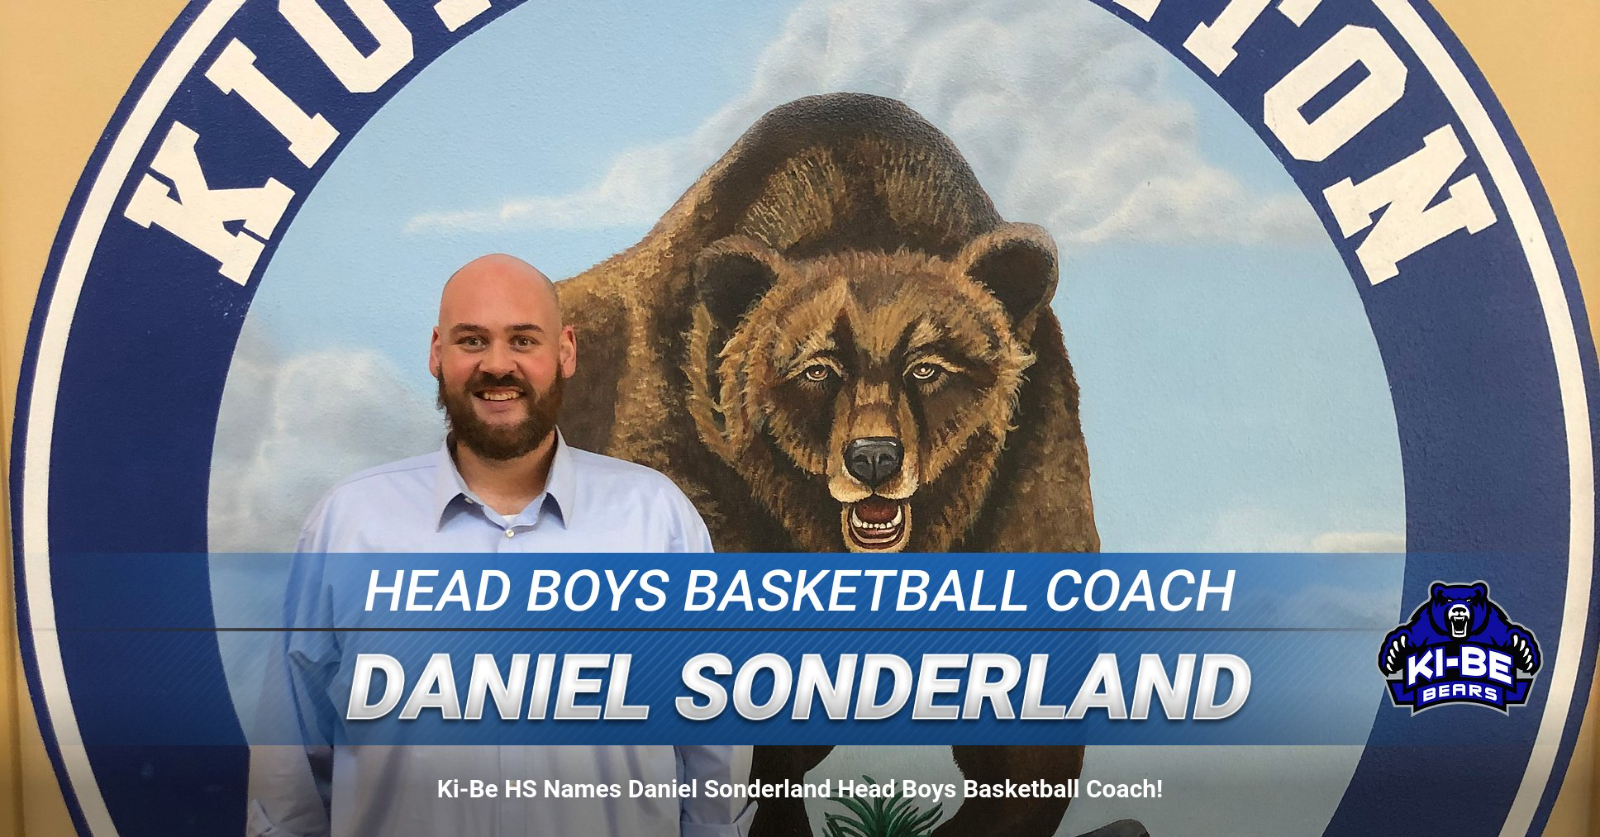 Daniel Sonderland Named Head Boys Basketball Coach